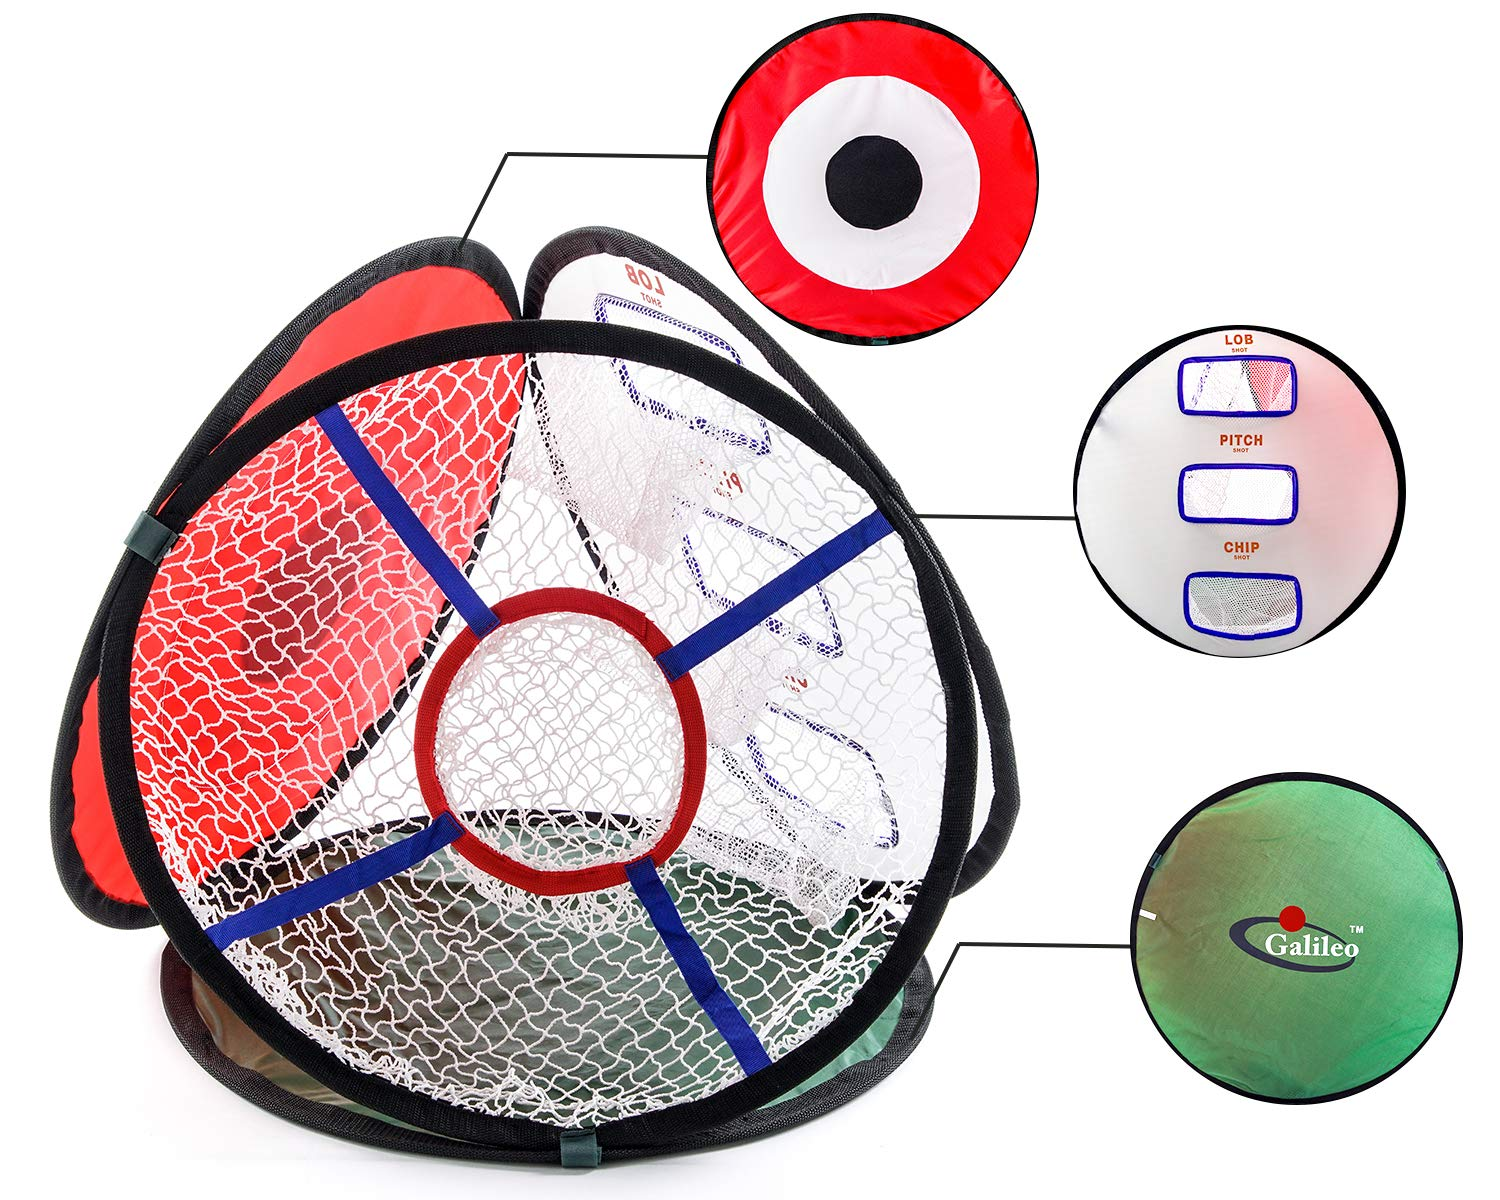 Galileo Driving Net Golf Indoor Outdoor Chipping Hitting Practice Pop up Golfing Collapsible Net Accessories Golf Outdoor Game